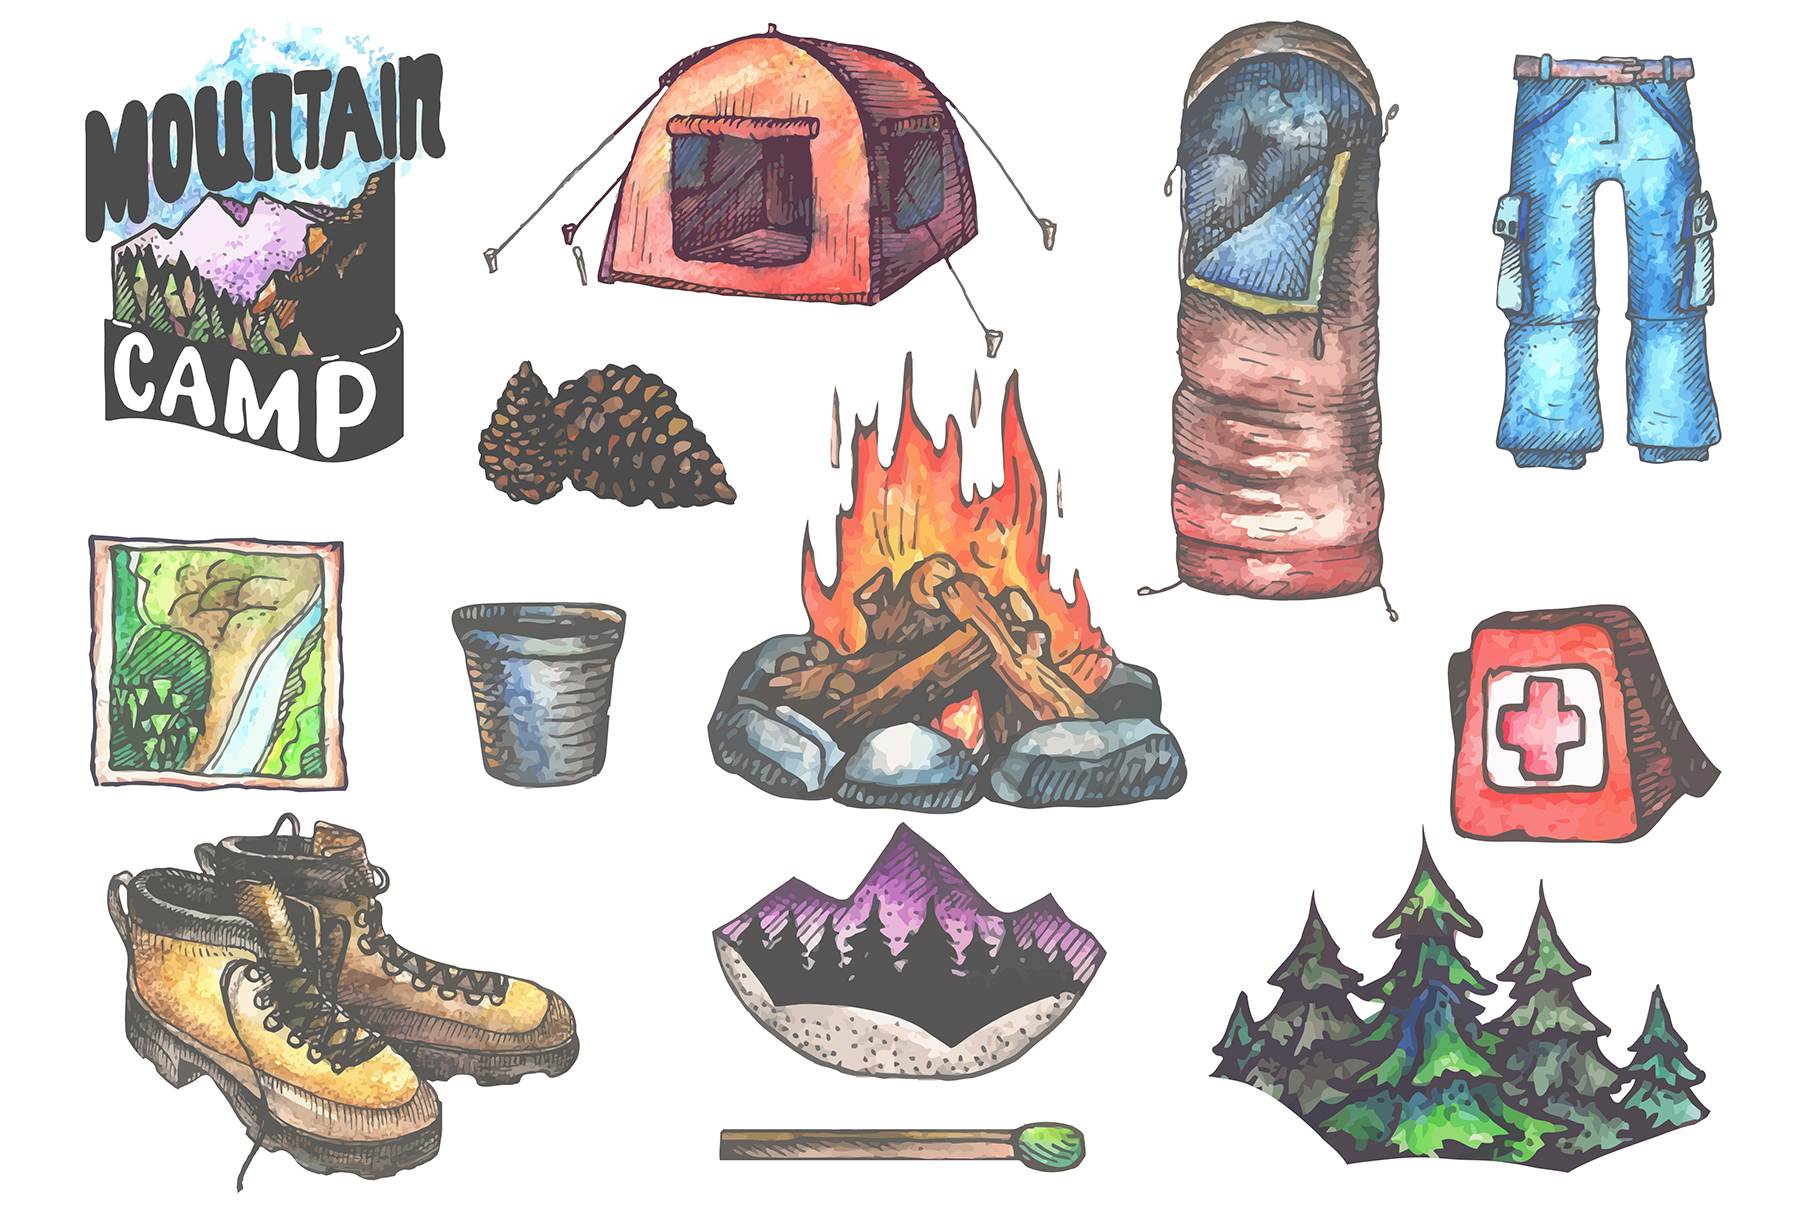 12 Camping equipment illustrations | Vol.2 example image 2